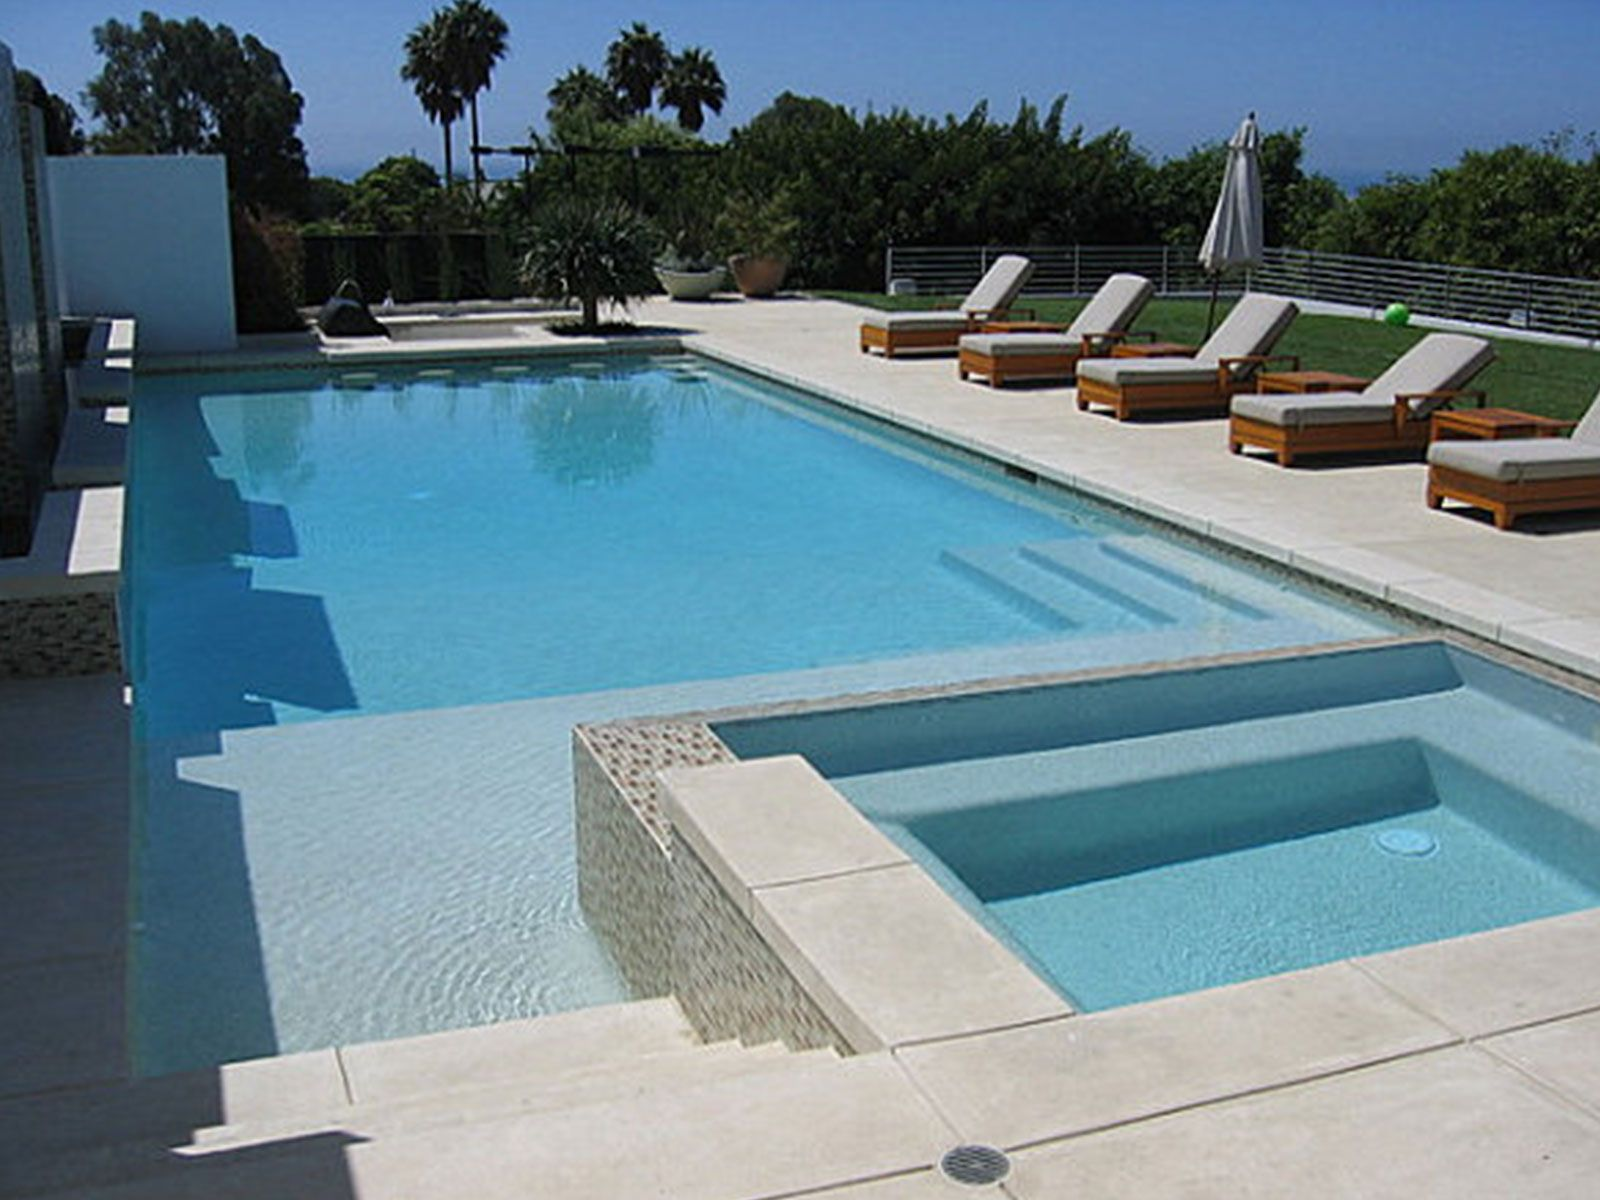 Simple swimming pool design image modern creative swimming for Swimming pool design layout